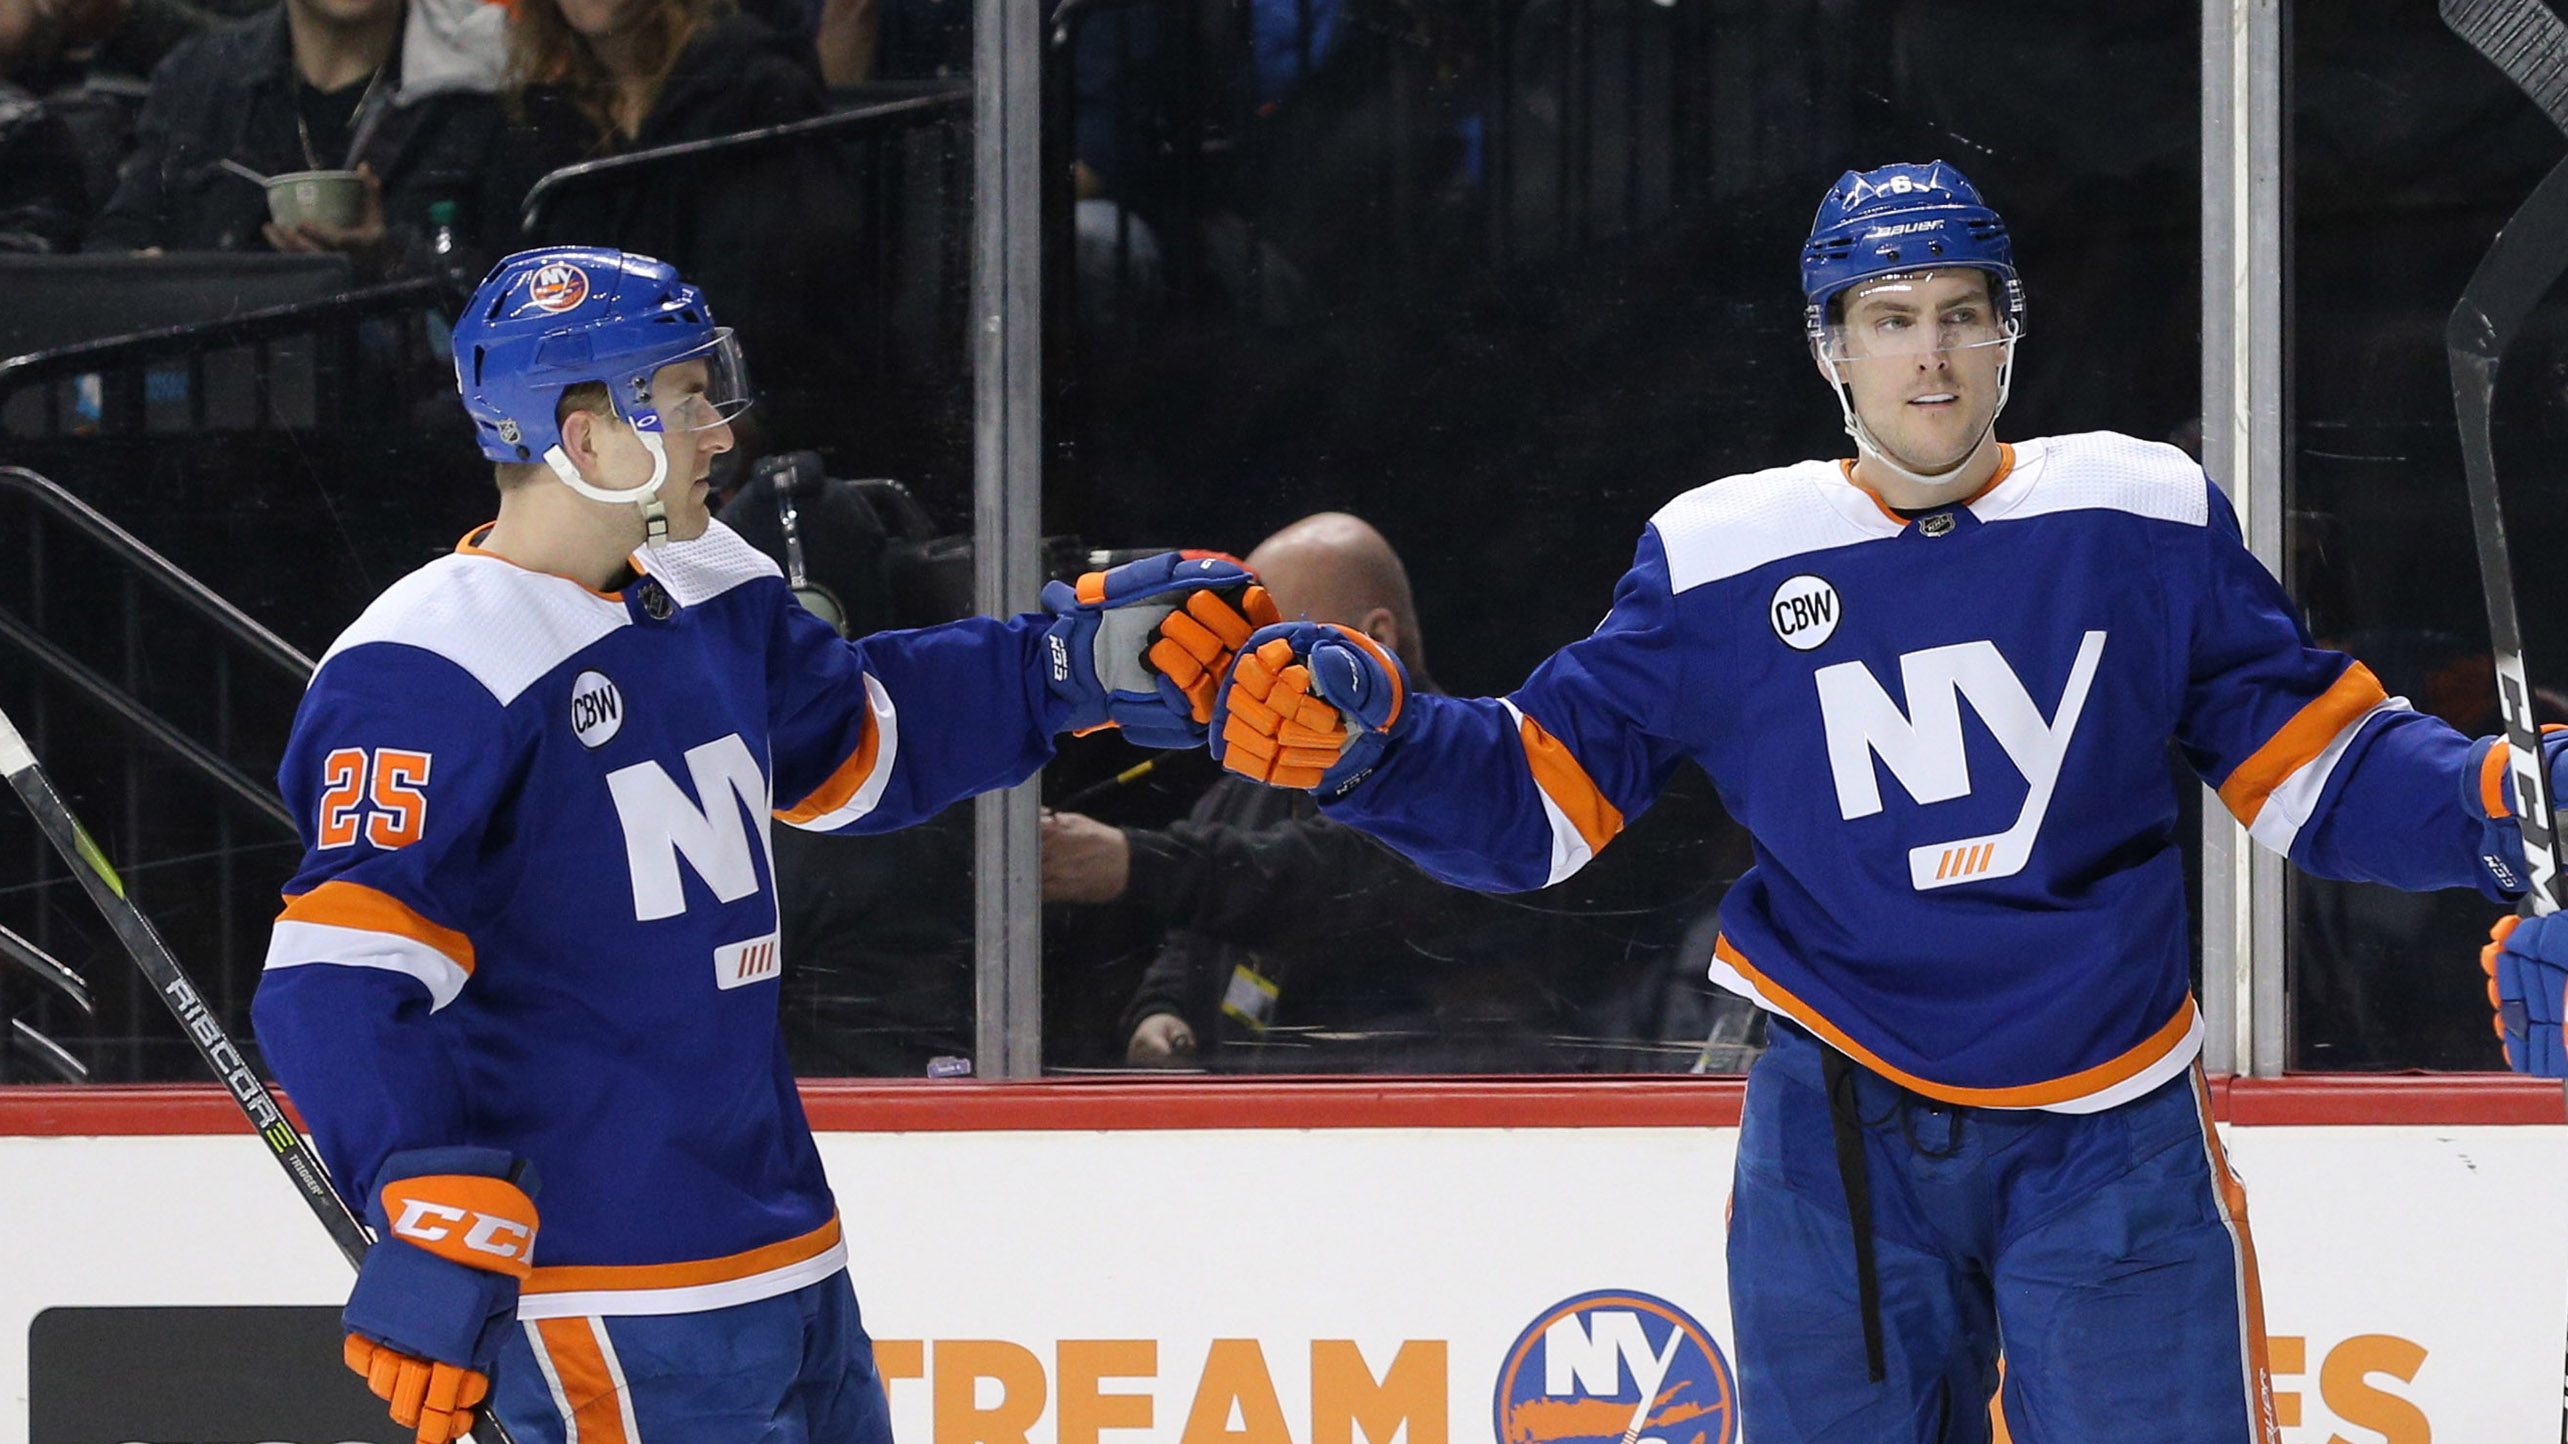 Feb 16, 2019; Brooklyn, NY, USA; New York Islanders defenseman Ryan Pulock (6) celebrates his goal against the Edmonton Oilers with defenseman Devon Toews (25) and left wing Anthony Beauvillier (18) during the second period at Barclays Center. Mandatory Credit: Brad Penner-USA TODAY Sports